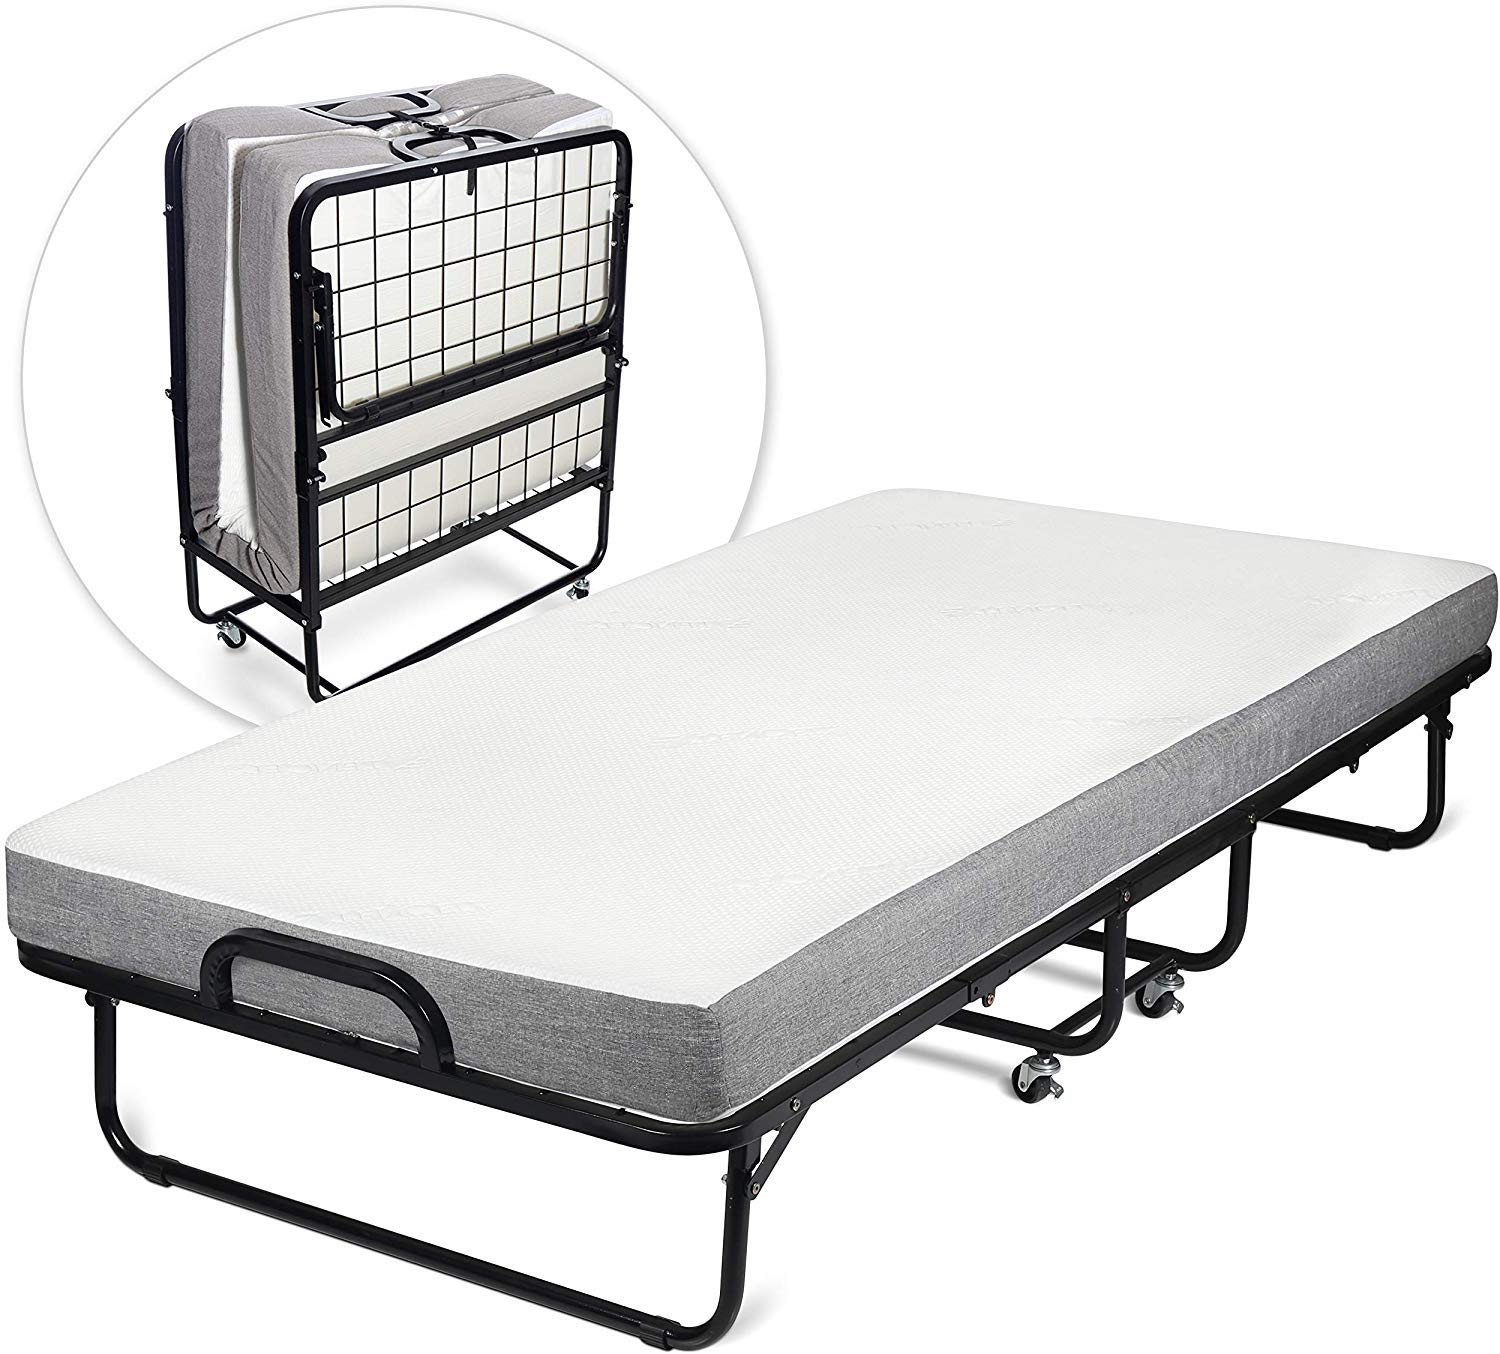 Milliard Diplomat Folding Bed - Twin Size